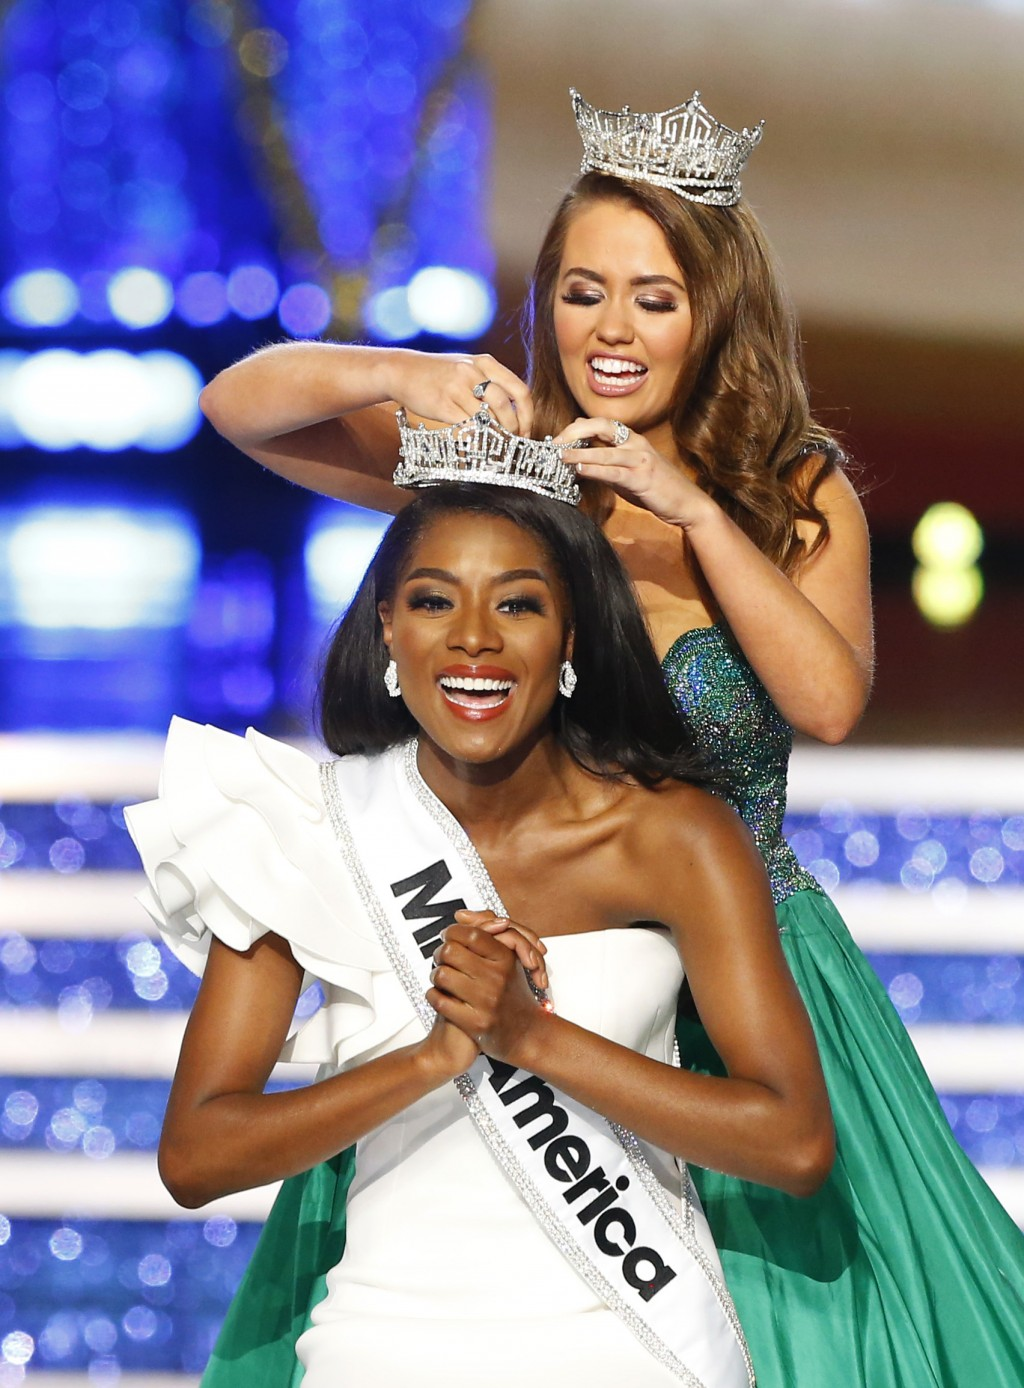 Miss New York Nia Franklin reacts after being named Miss America 2019, as she is crowned by last year's winner Cara Mund, Sunday, Sept. 9, 2018, in At